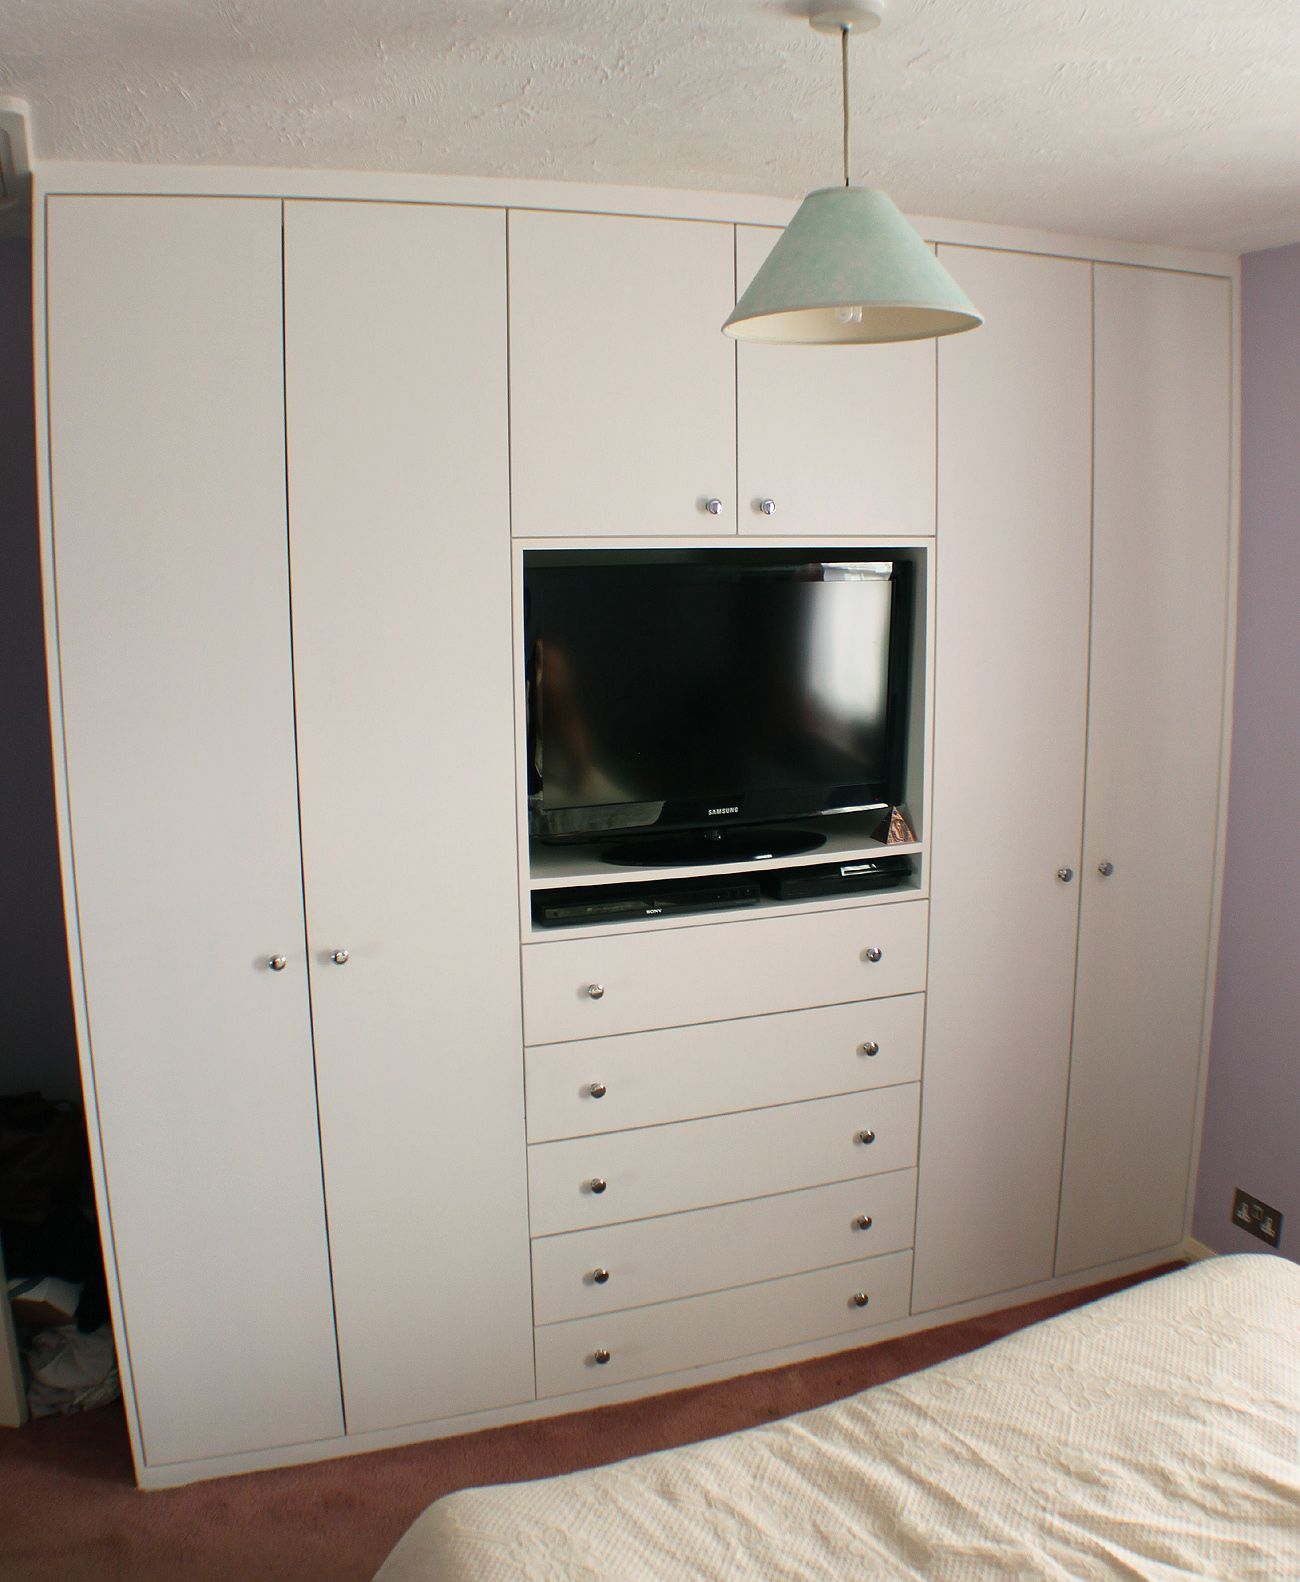 images of built in wardrobes - Google Search